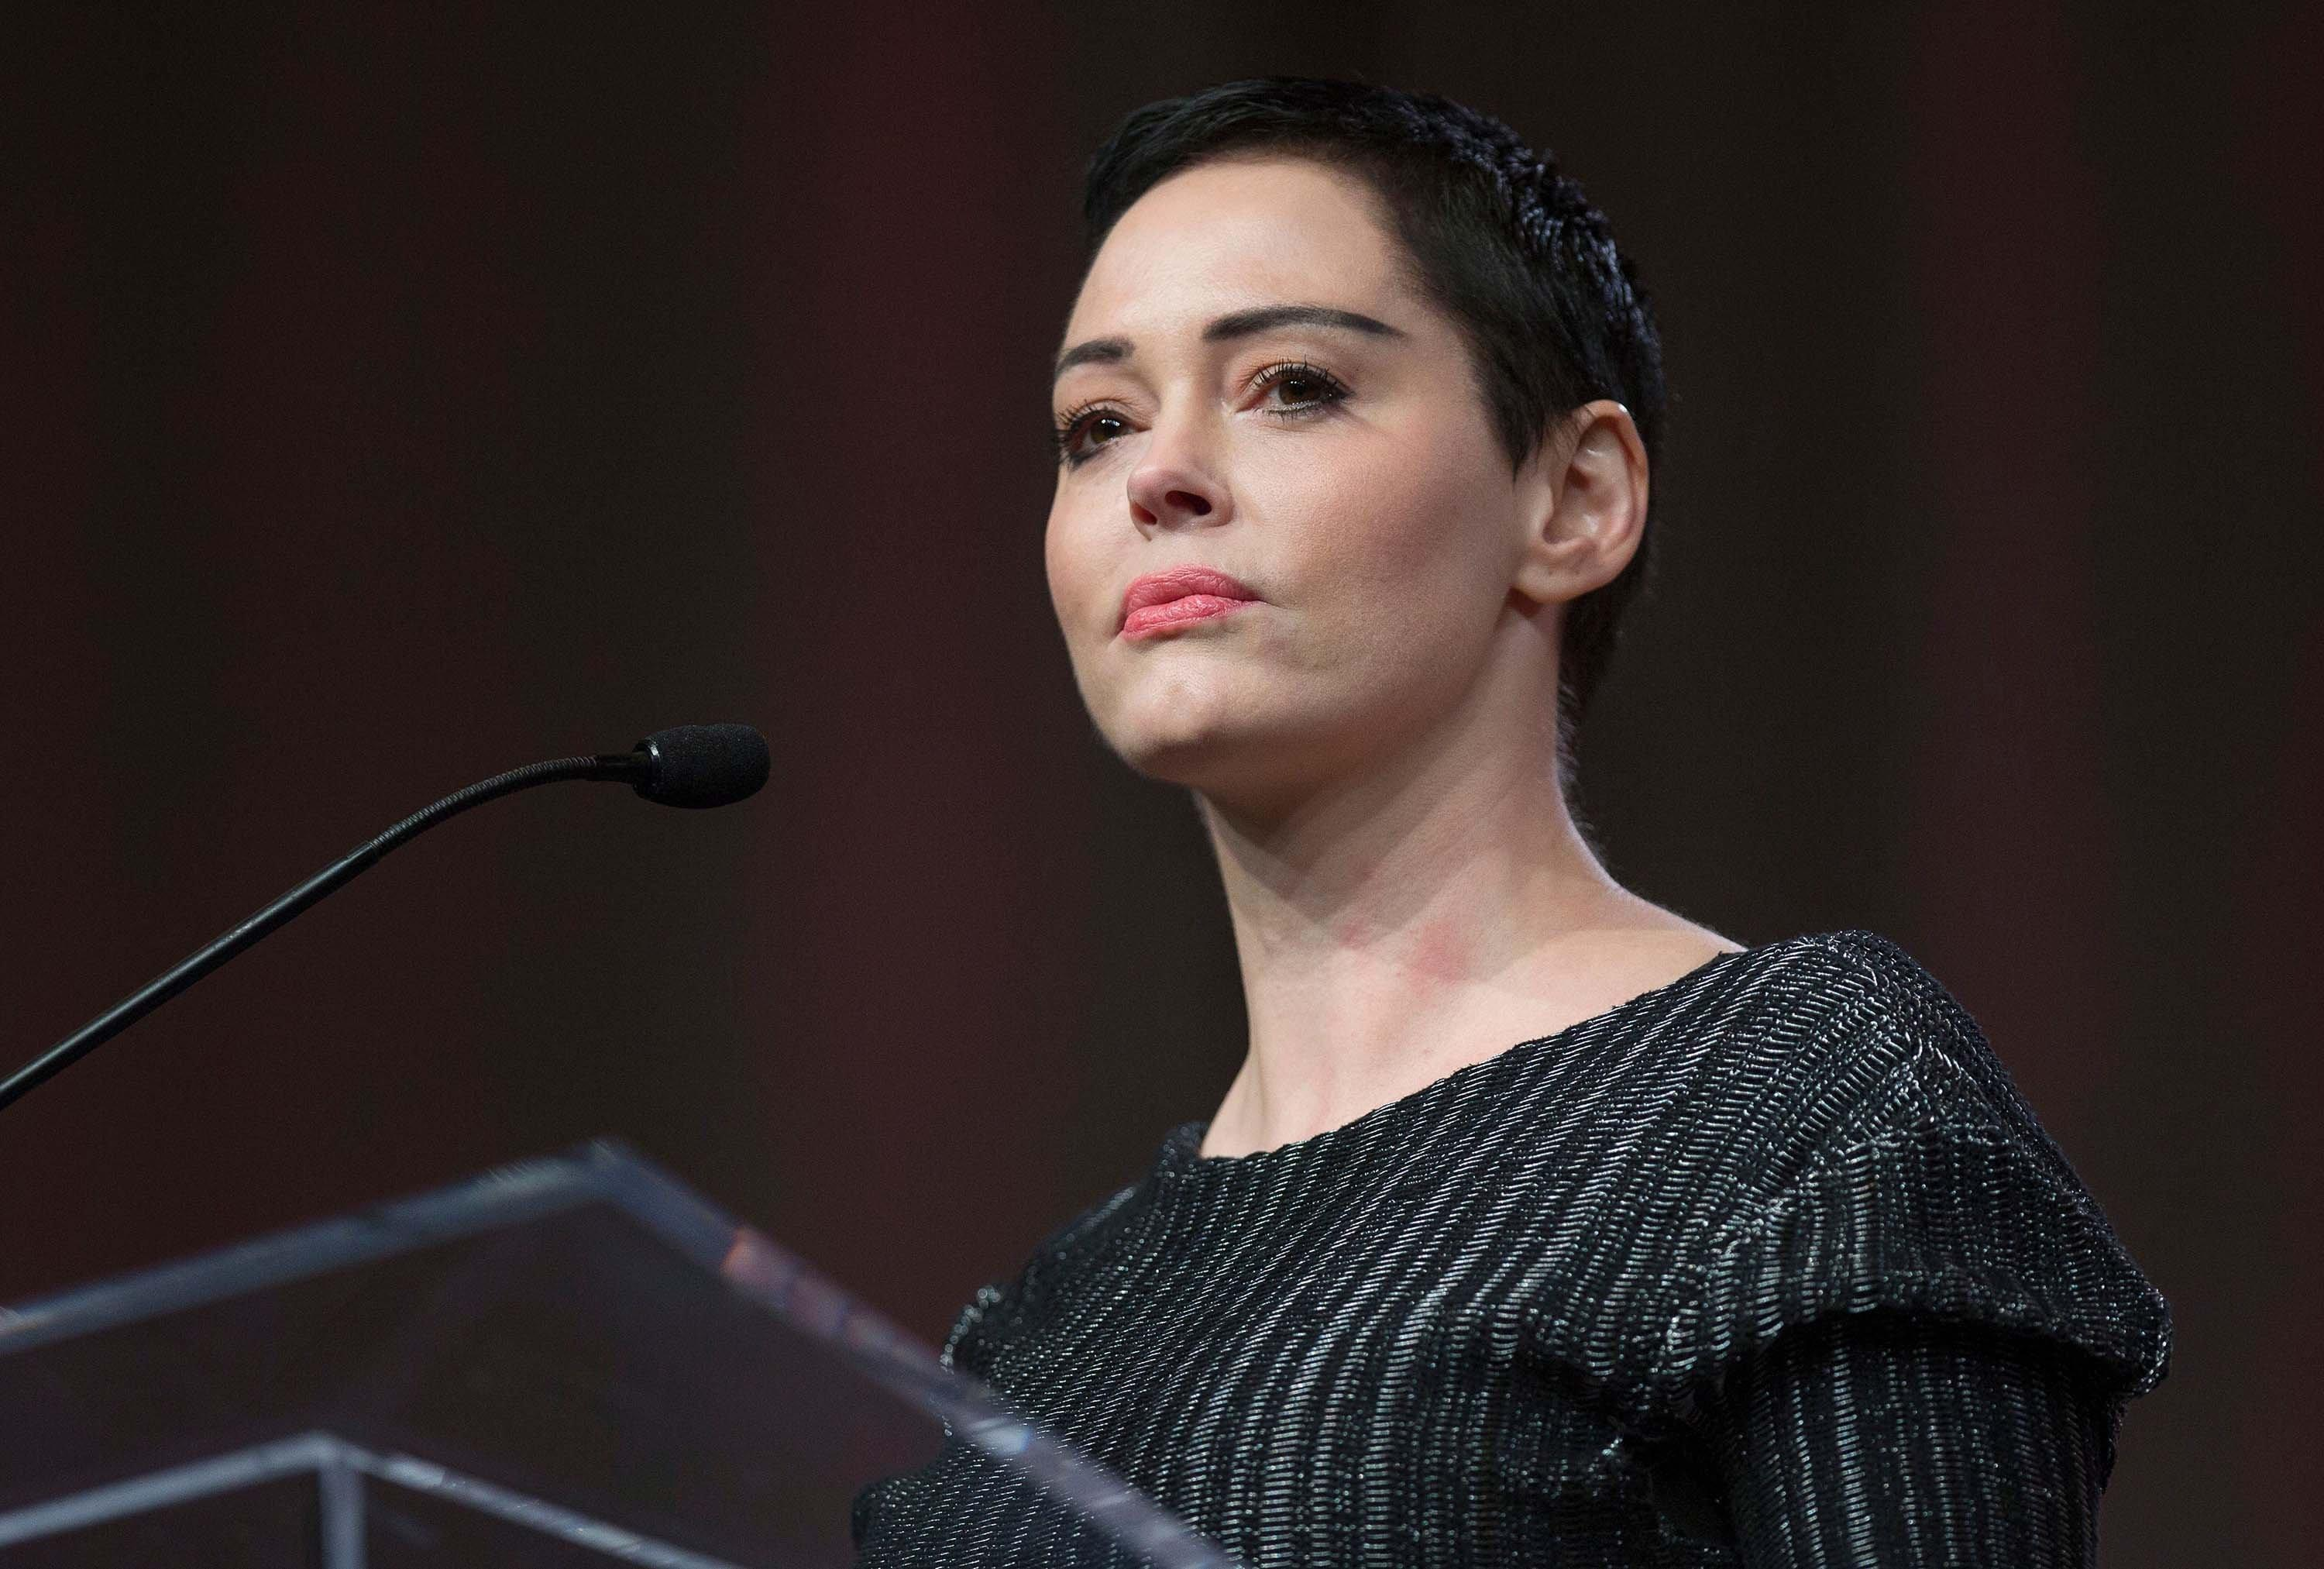 ROSE MCGOWAN INDICTED ON FELONY DRUG CHARGE